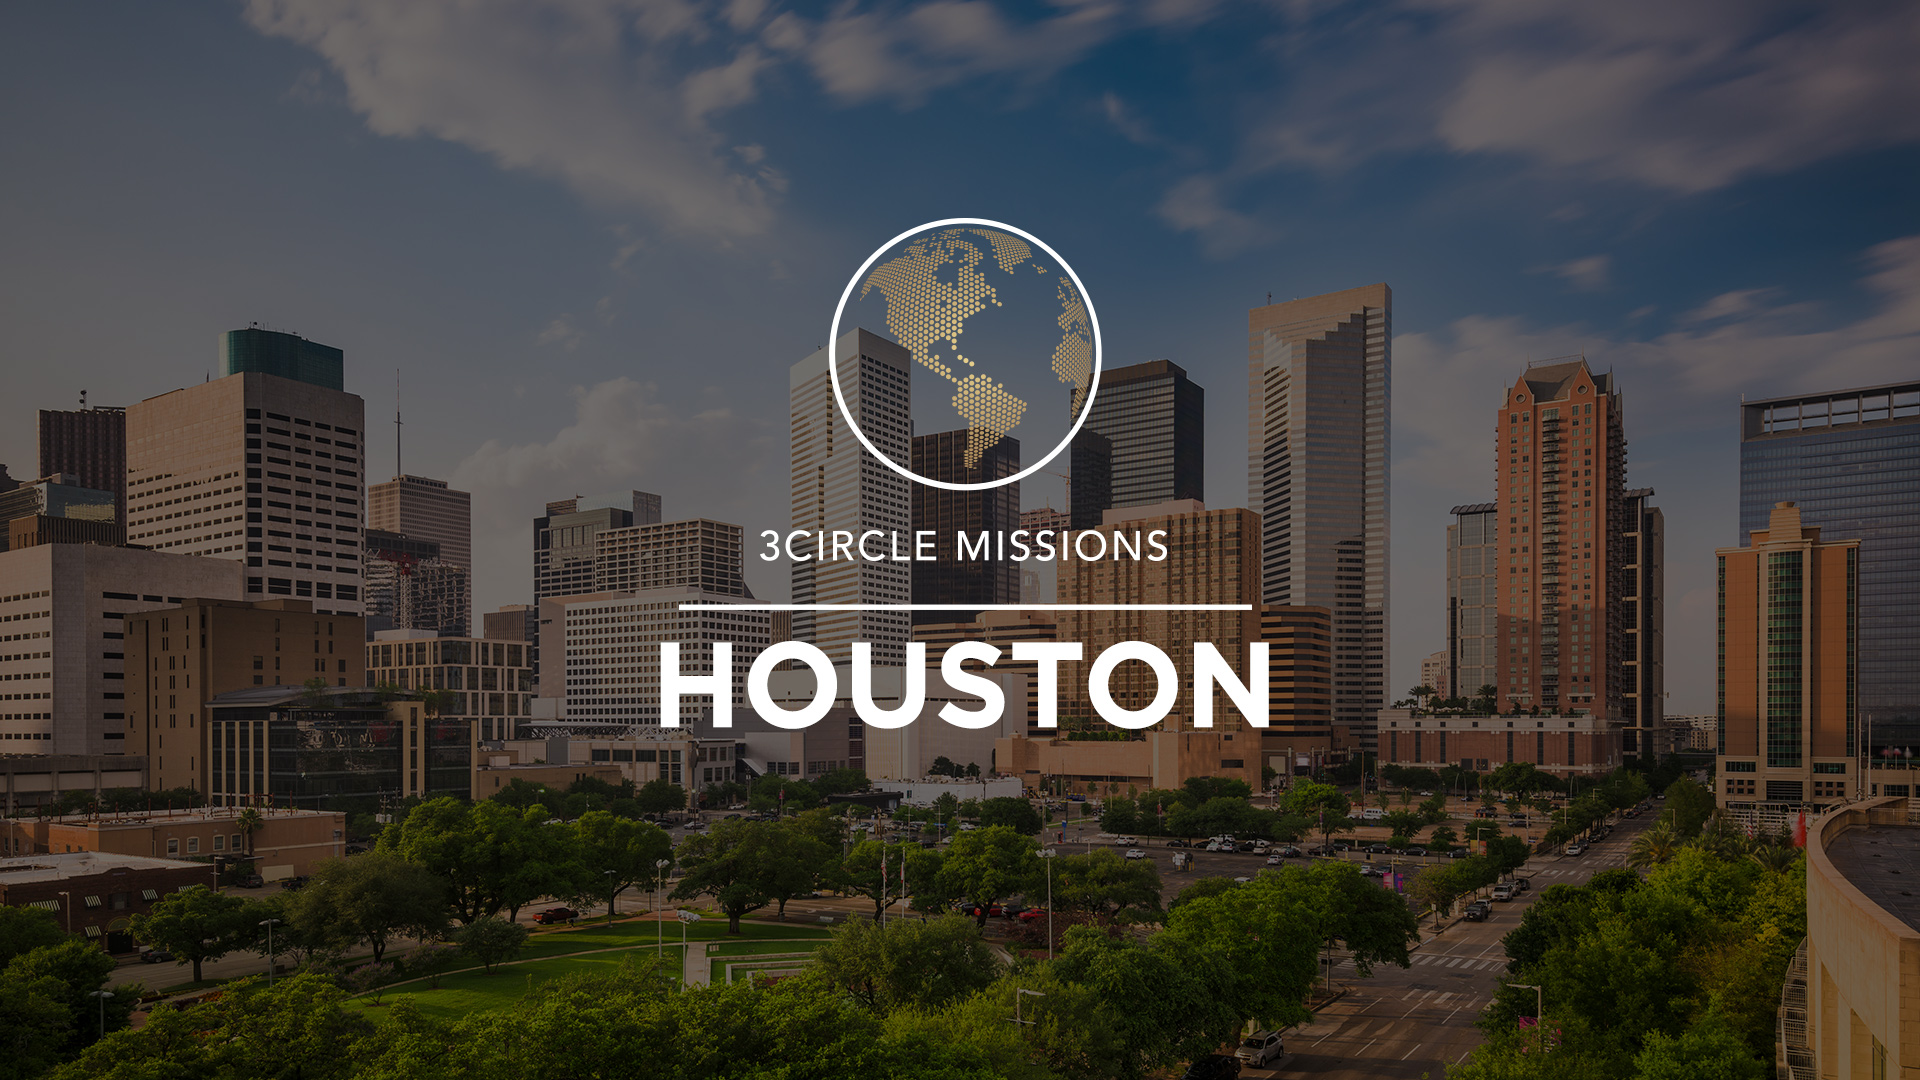 MISSION TRIP: HOUSTON